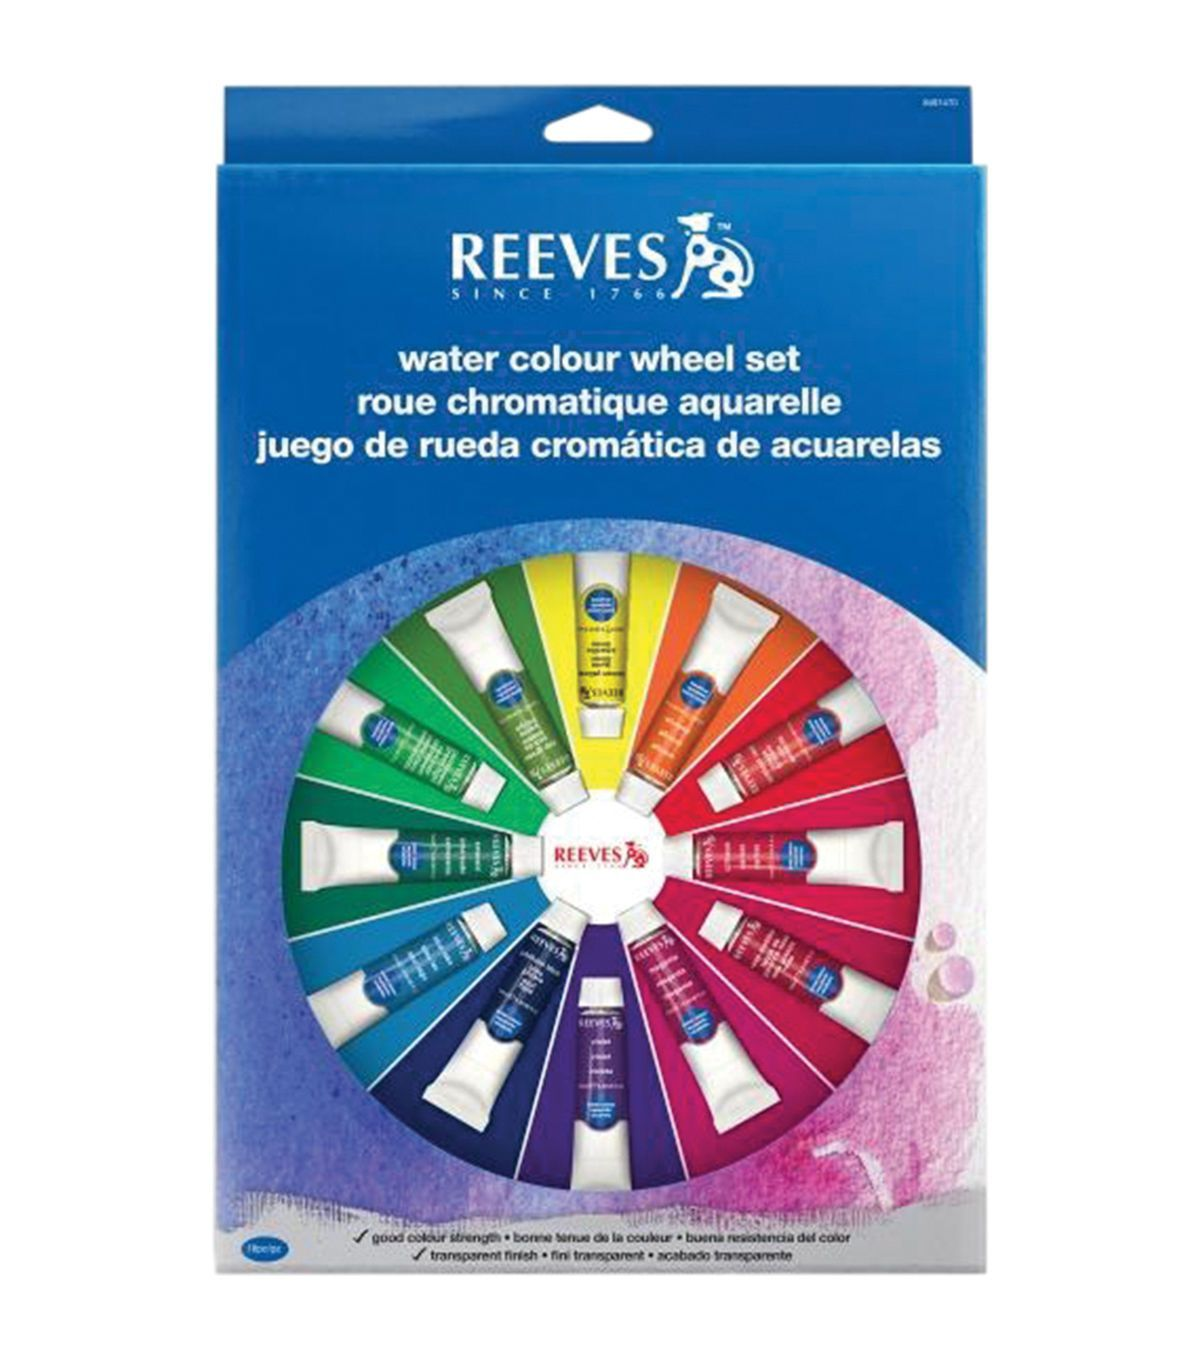 Reeves Watercolor Wheel Set Watercolor Paint Set Watercolour